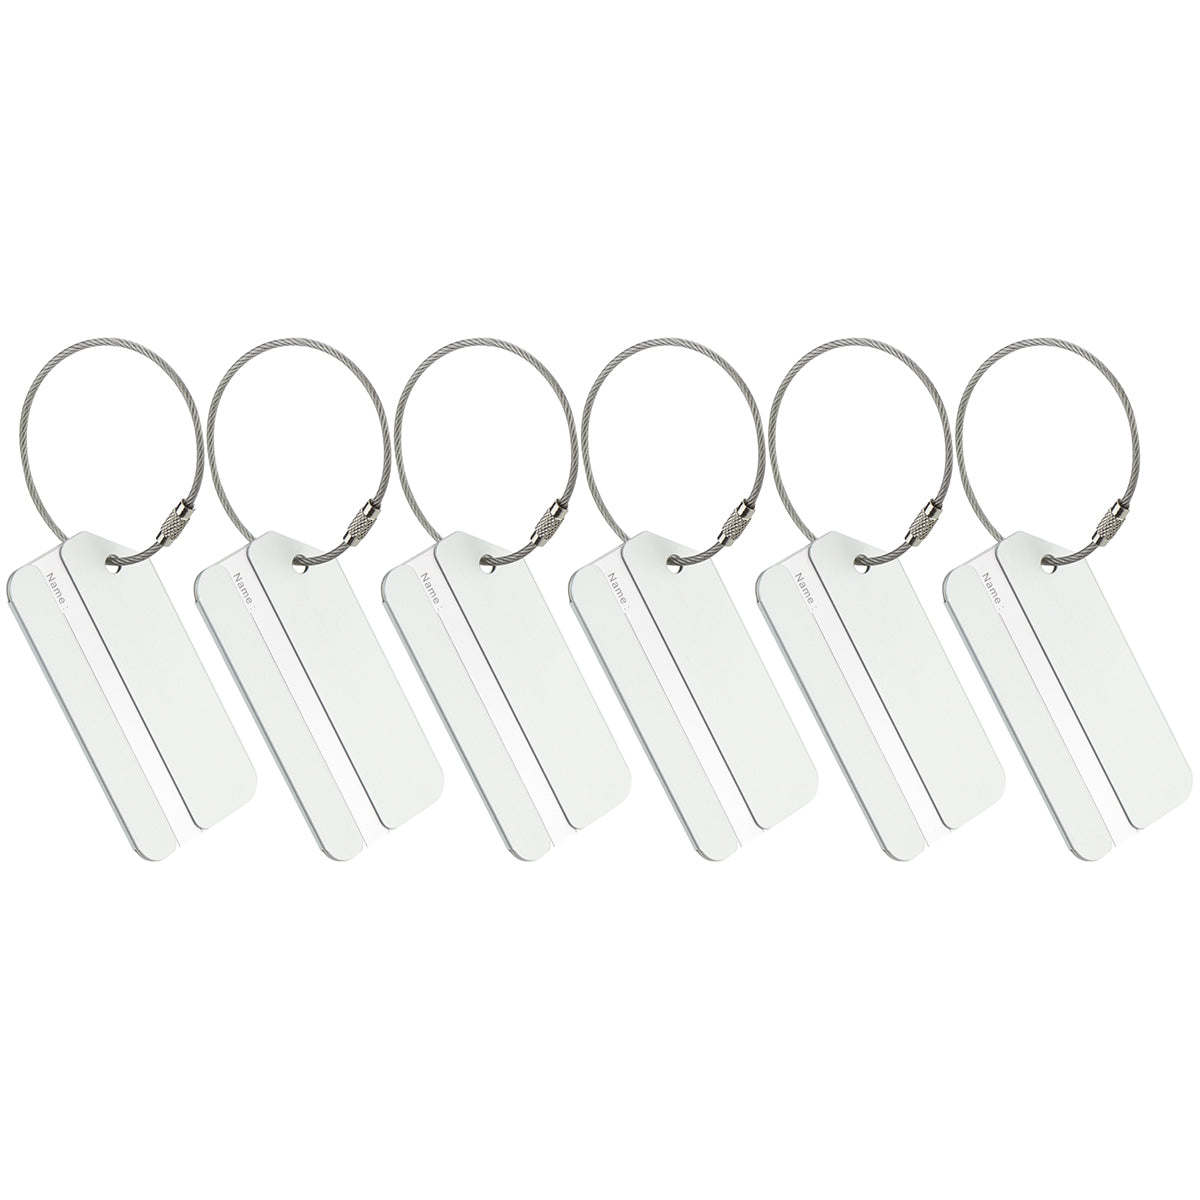 Six silver luggage tags placed upright.